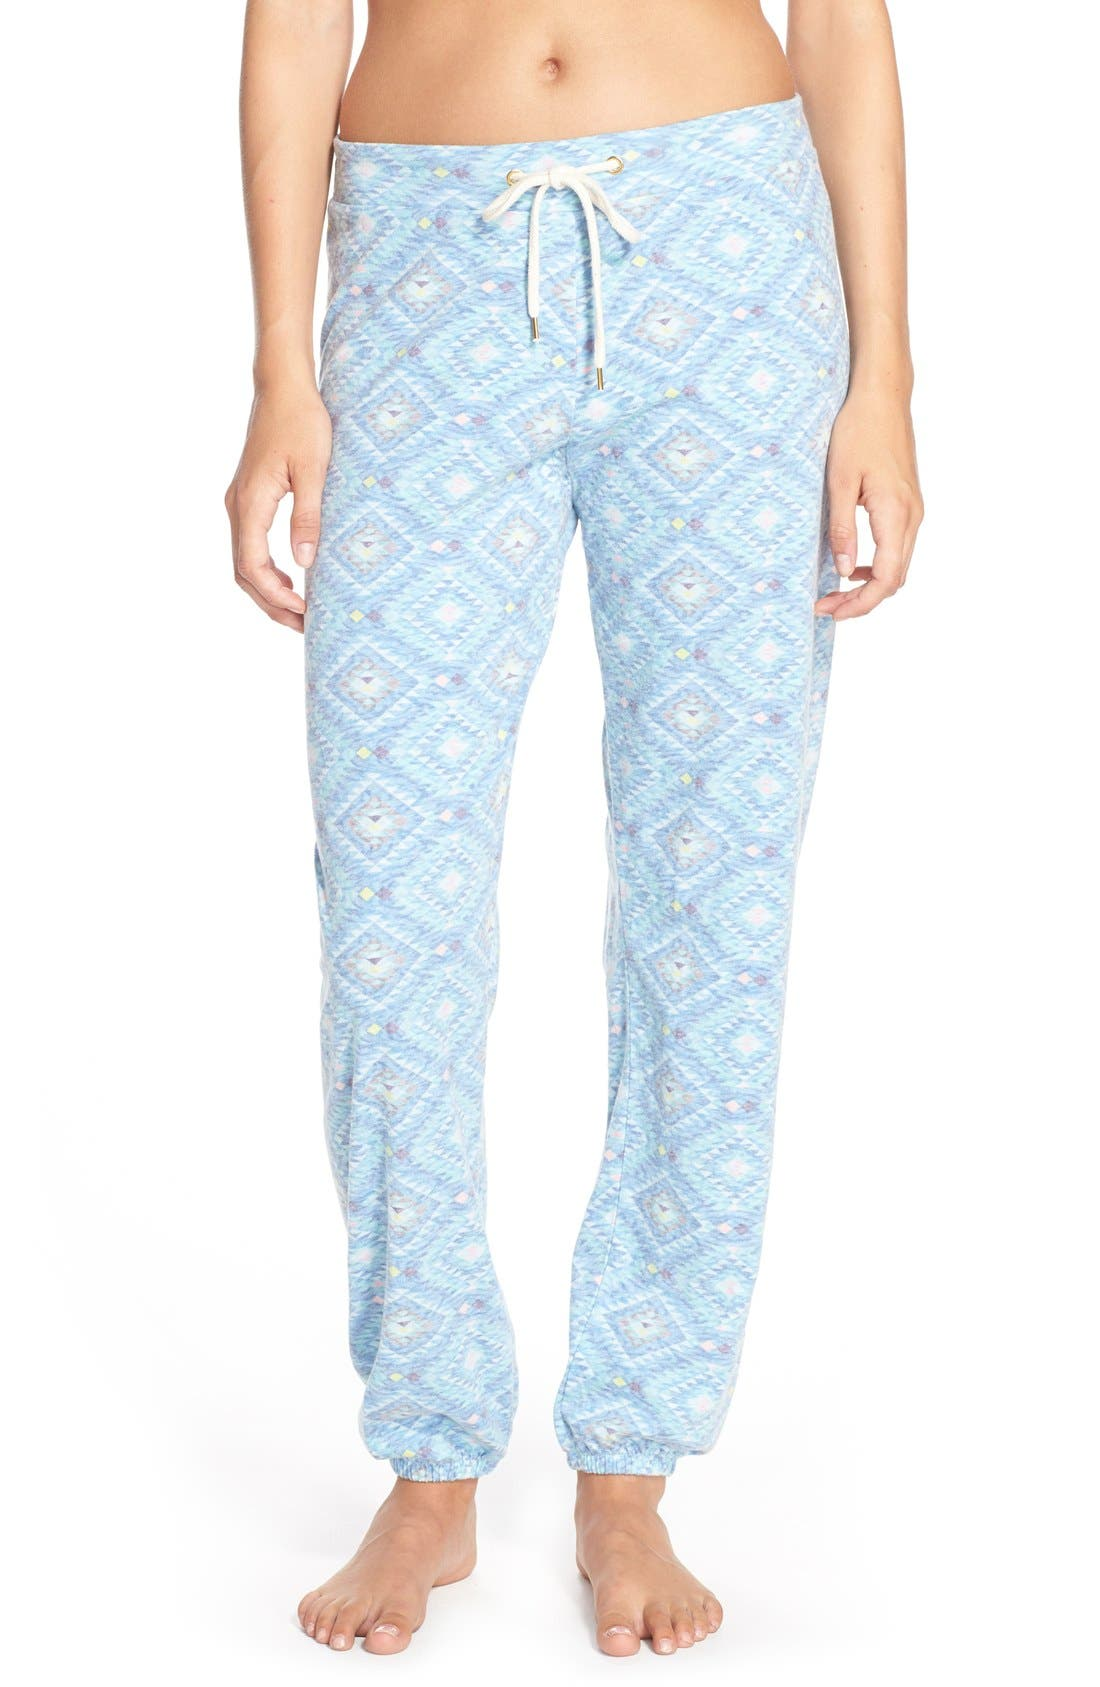 Alternate Image 1 Selected - Honeydew Intimates Slouchy Sweatpants